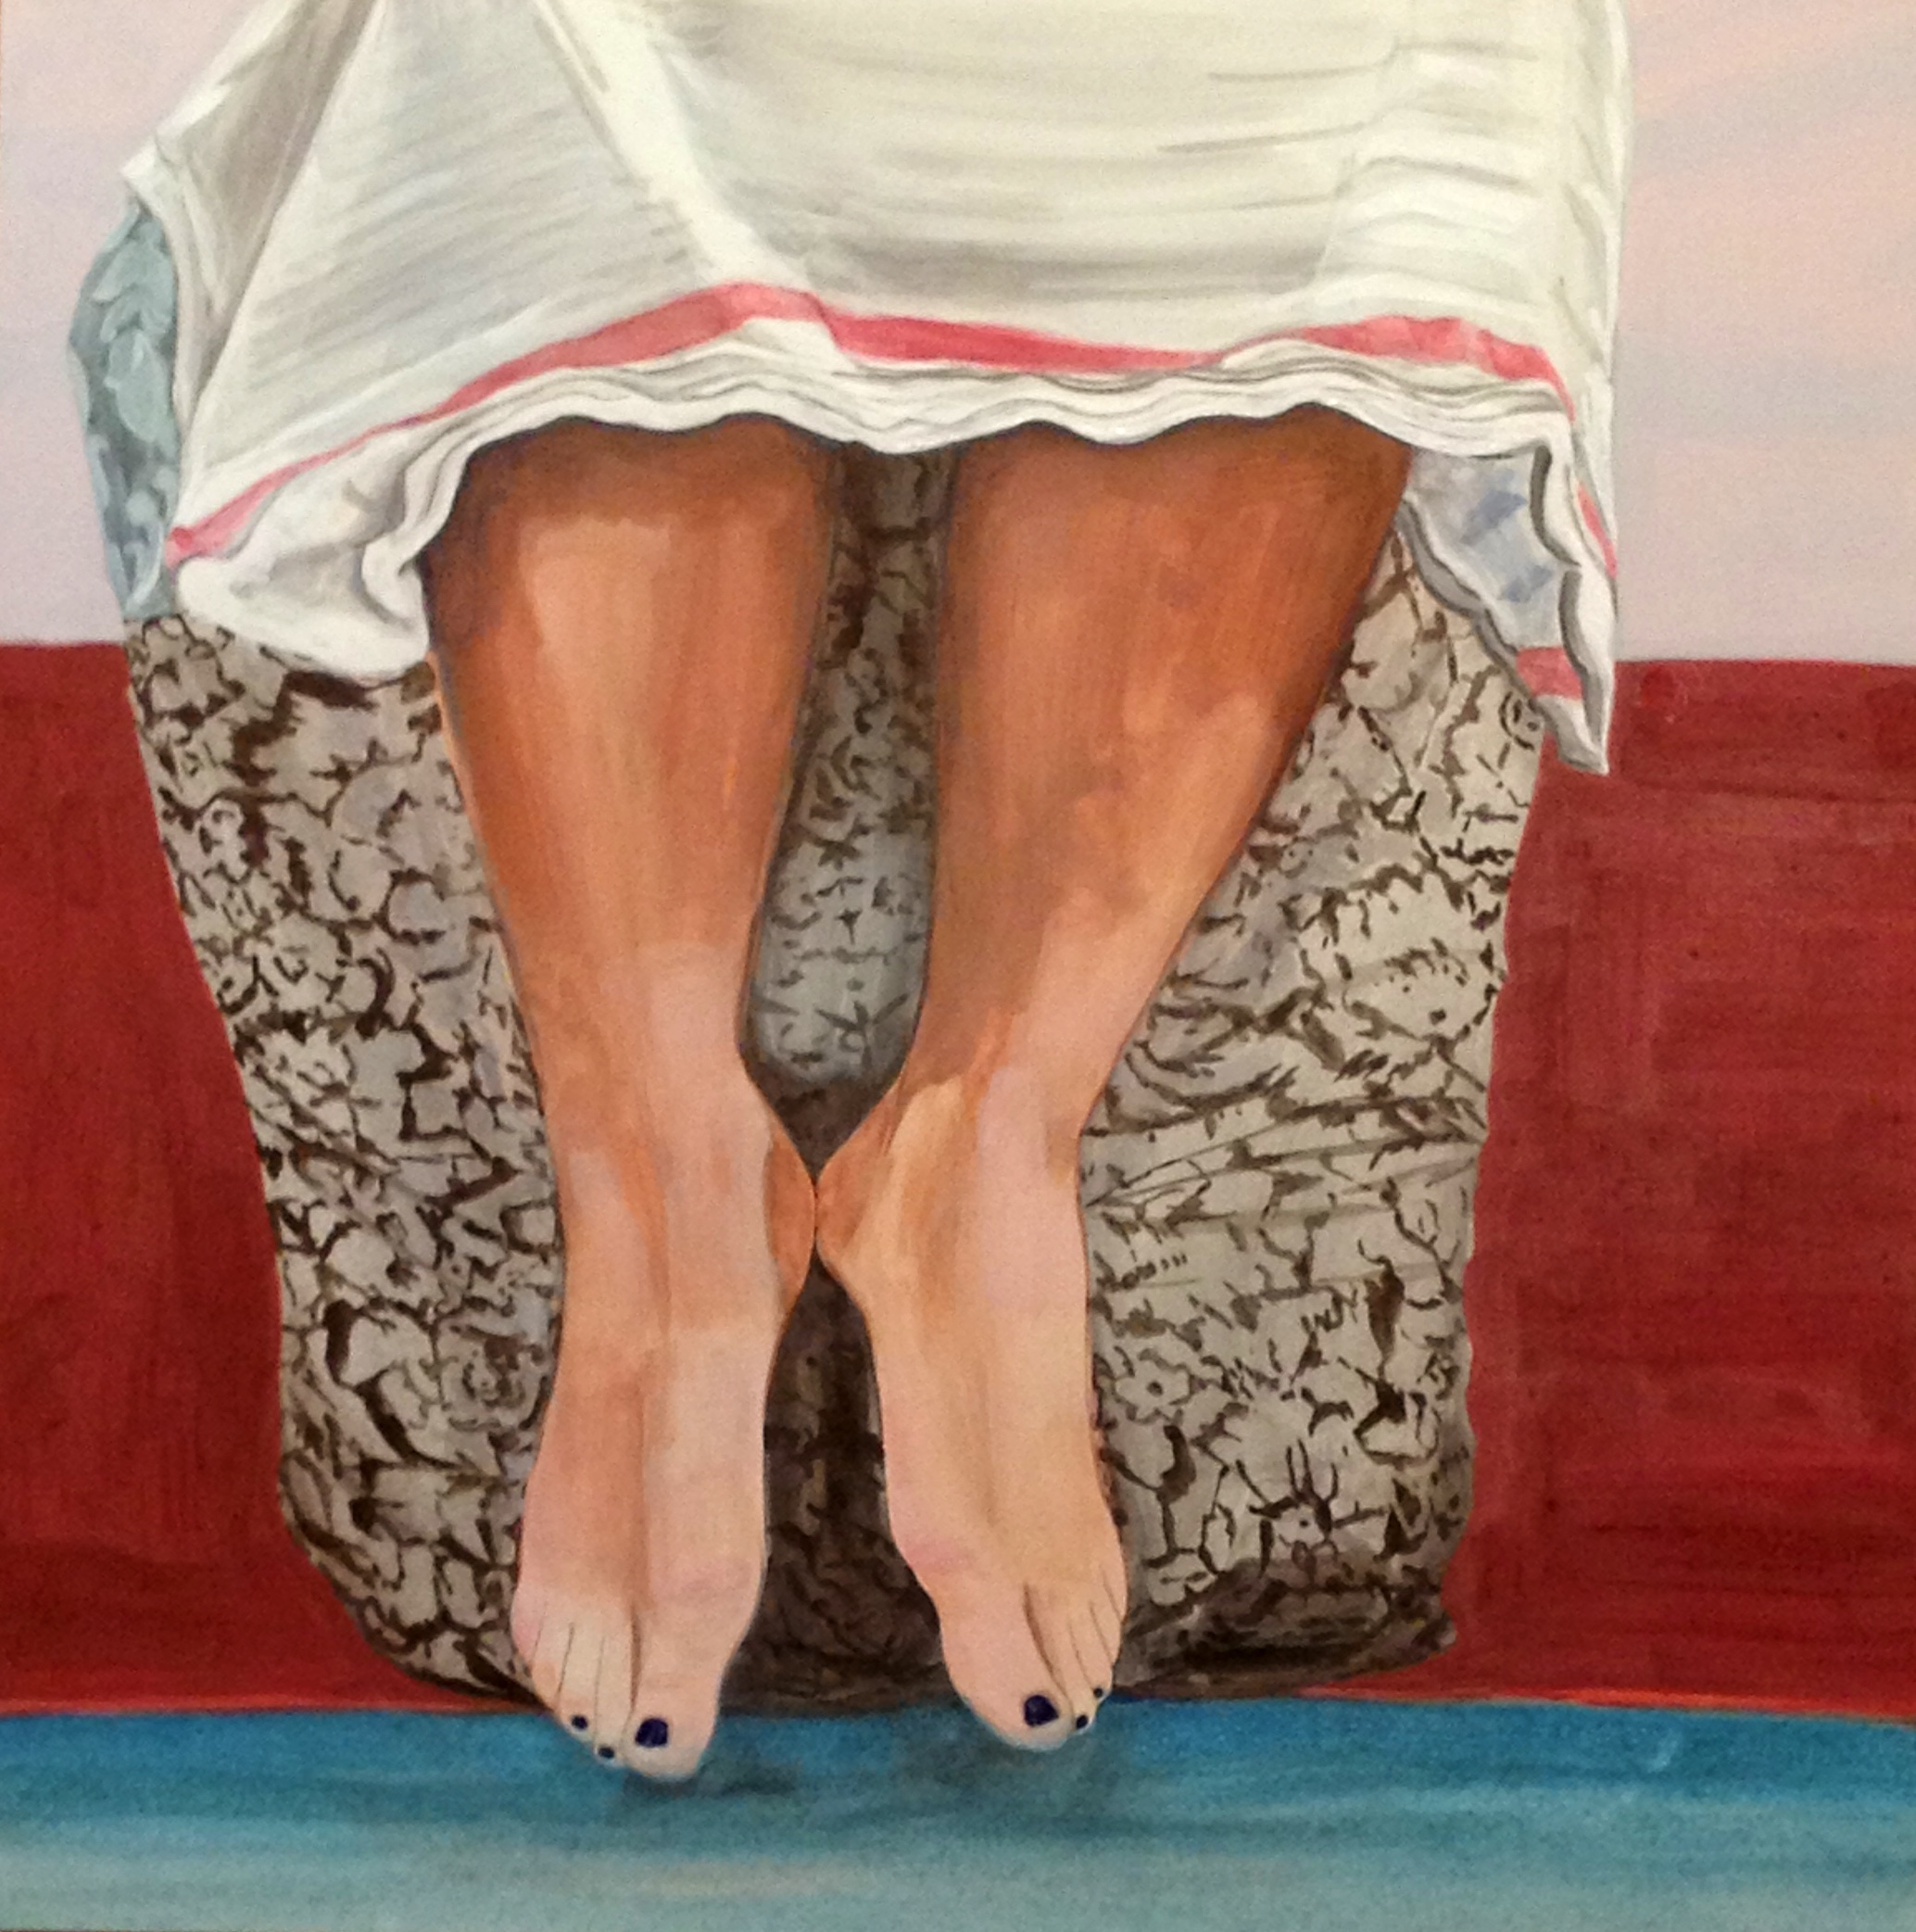 i wash my feet for you, gouache and gum arabic on panel, 15x15""